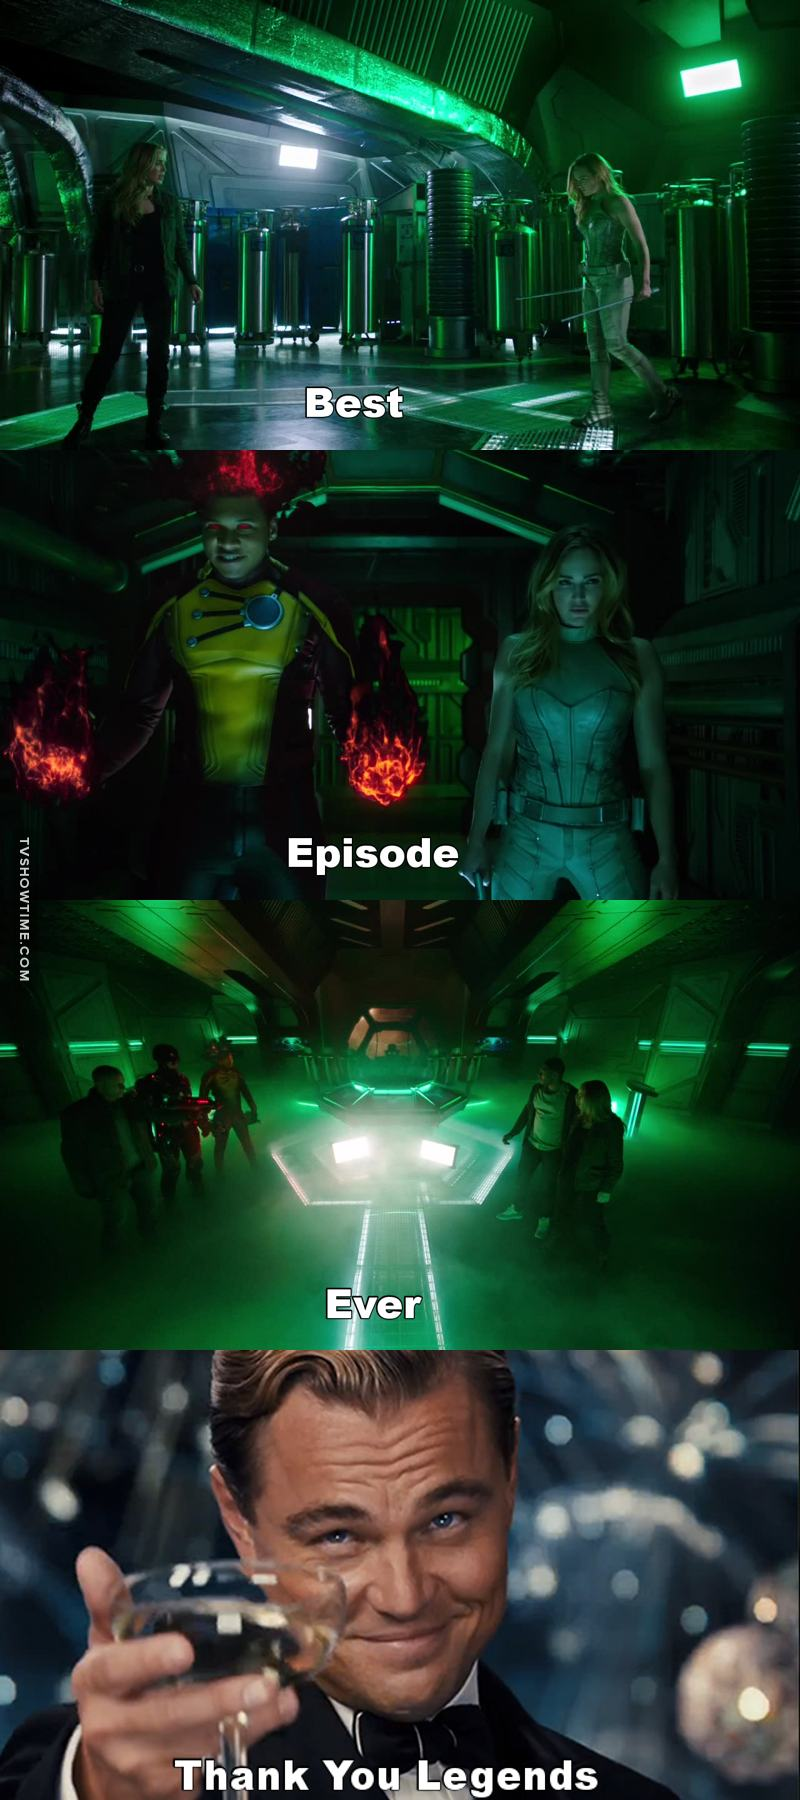 This was probably the best episode so far, even though every episode of Legends of Tomorrow is epic! 👌👏